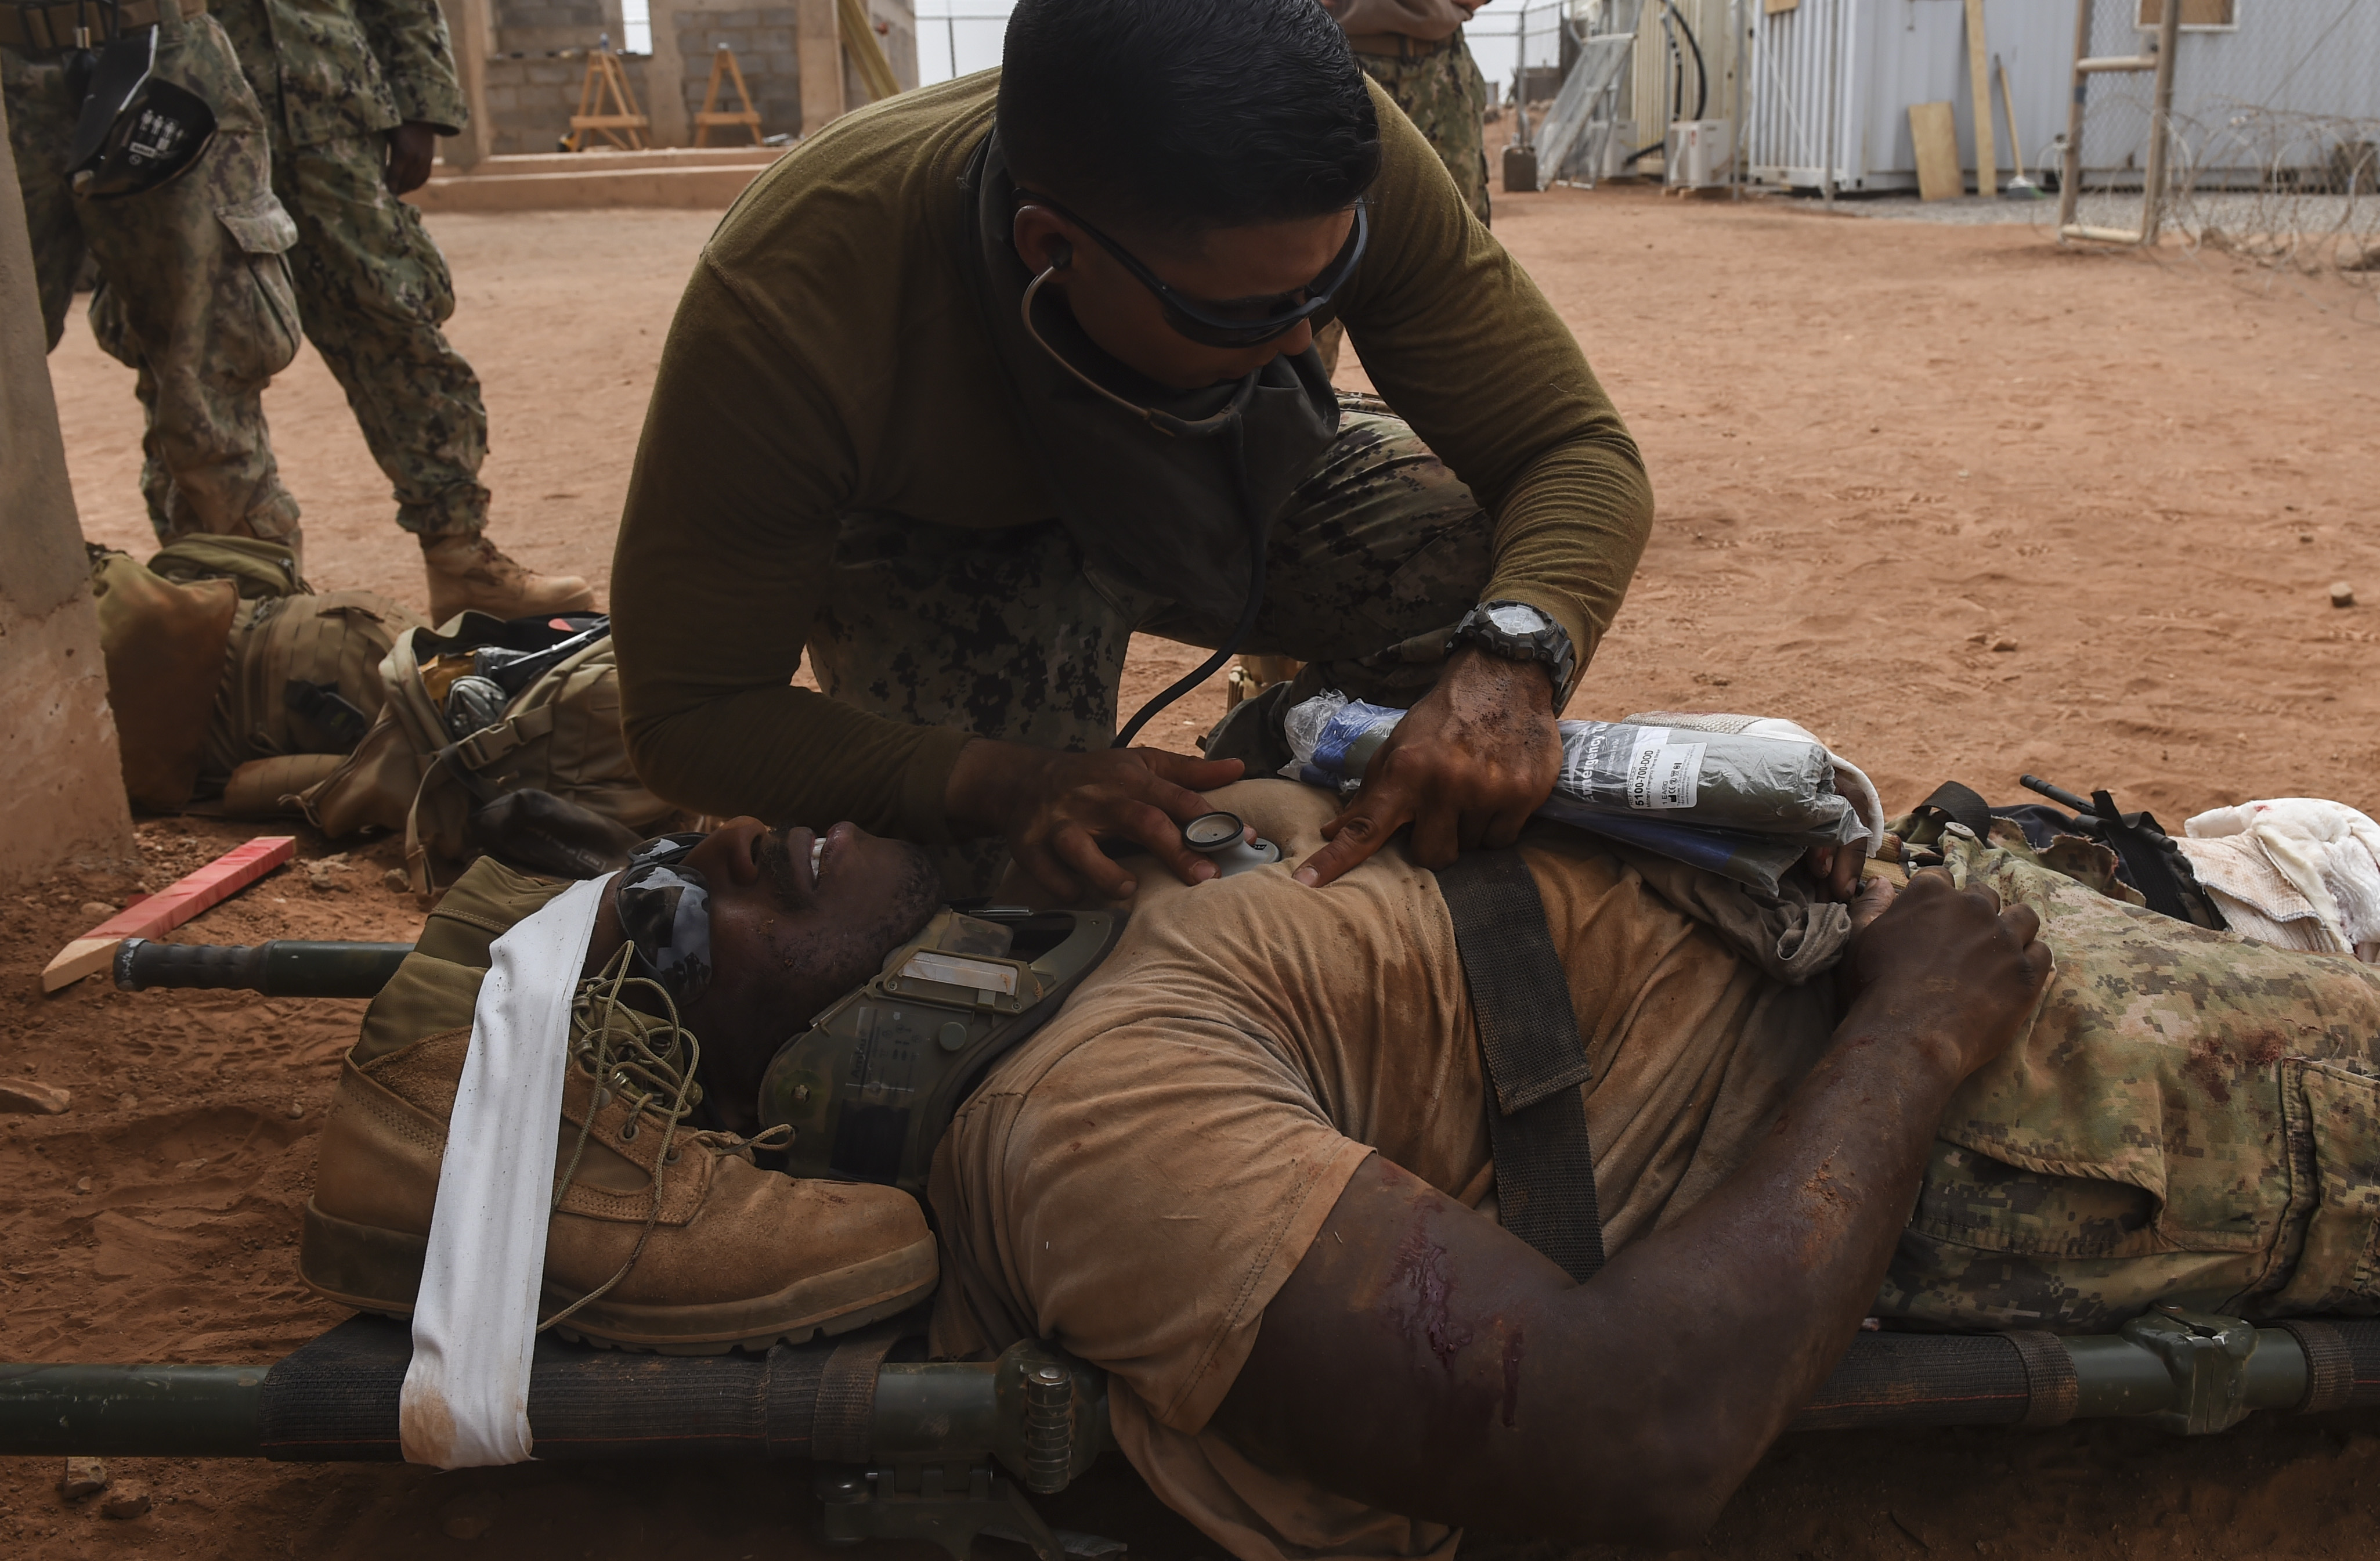 U.S. Navy Hospital Corpsman 3rd Class David Rojas from the Naval Mobile Construction Battalion One, a maneuver unit of the Combined Joint Task Force-Horn of Africa, uses a stethoscope to listen to a patient's heartbeat during a bilateral exercise with French forces in the Arta region, July 19, 2017. This bilateral training was the first execution of medical evacuation procedures with French military personnel and increases the ability of all participants to plan, communicate and execute complex operations. (U.S. Air Force photo by Staff Sgt. Eboni Prince)